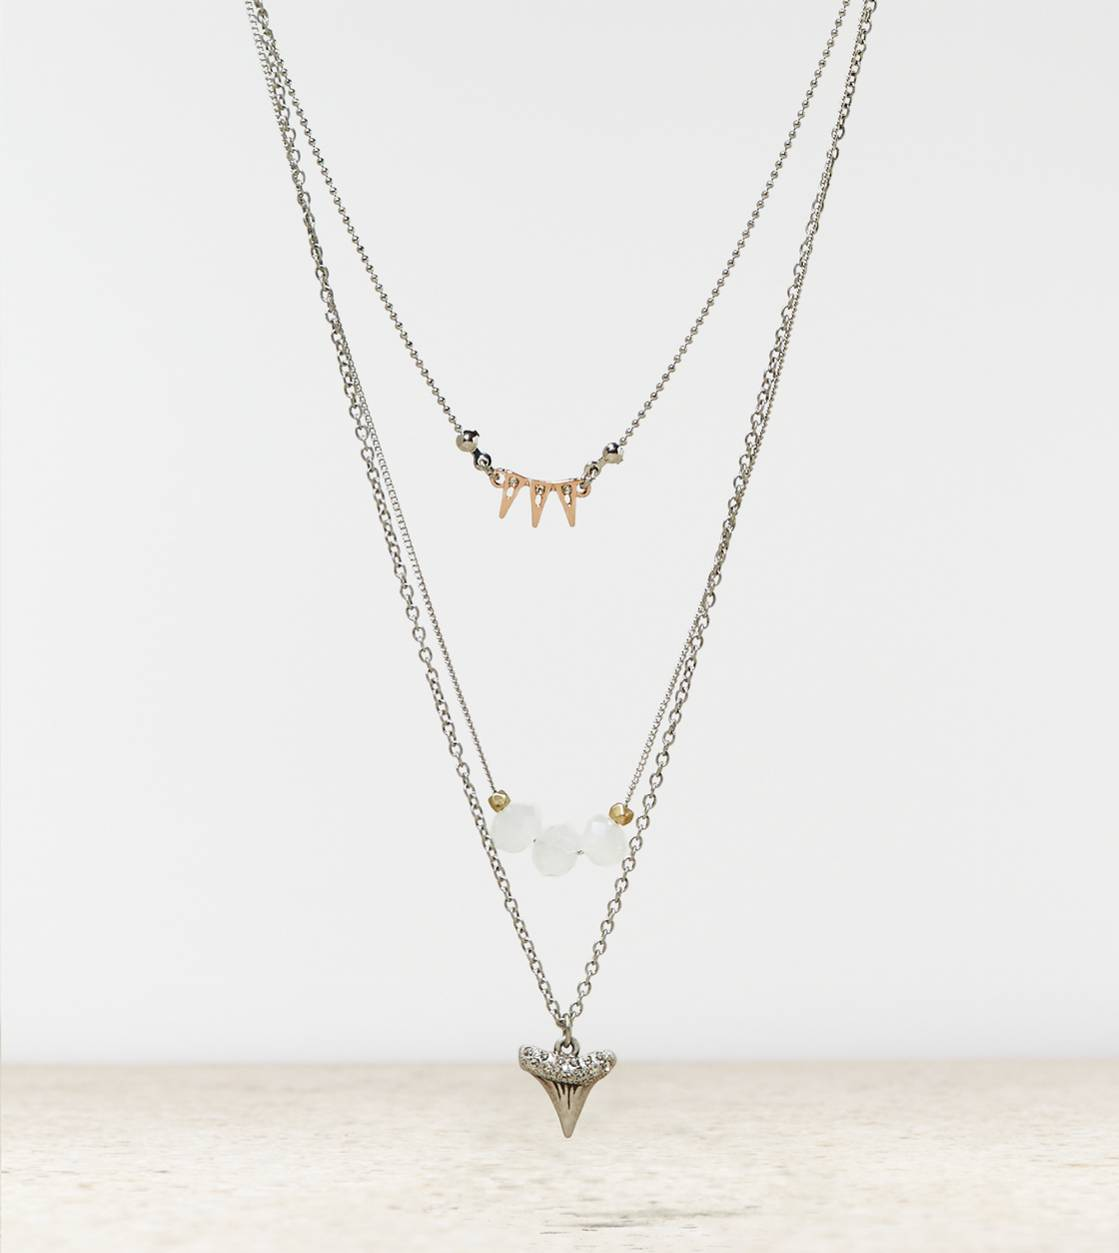 Silver AEO Shark Tooth Necklace